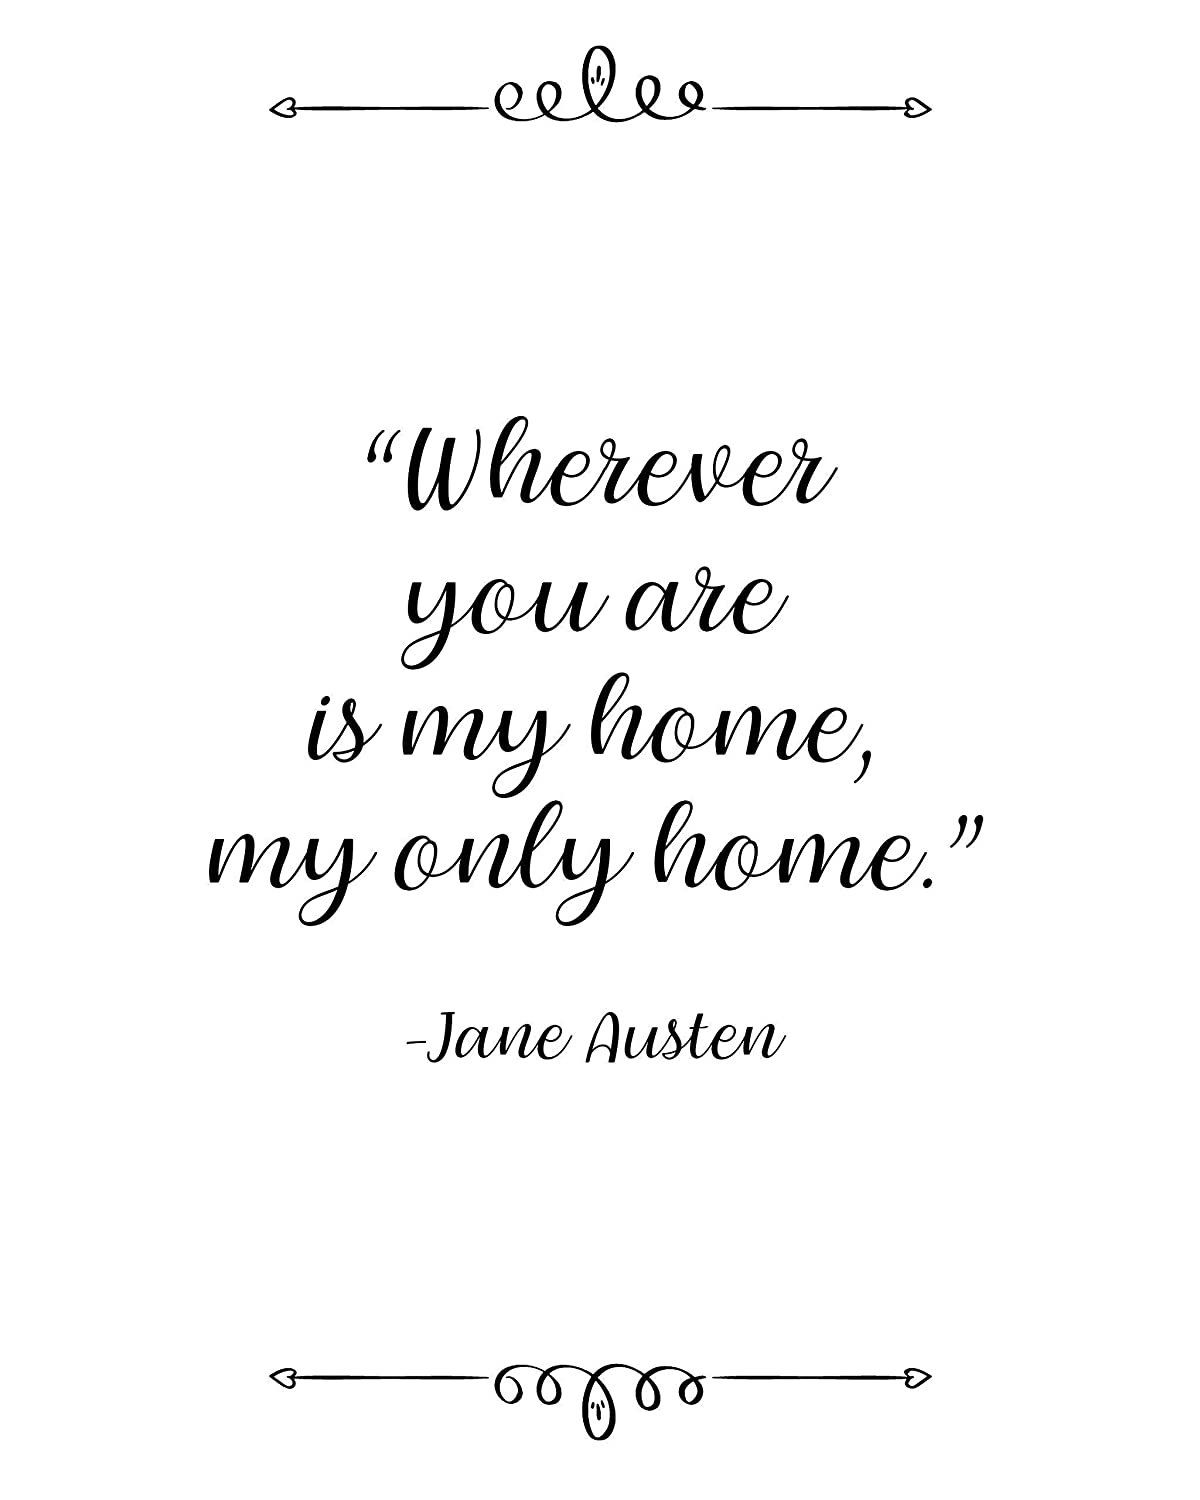 com jane austen wherever you are is my home quote wall